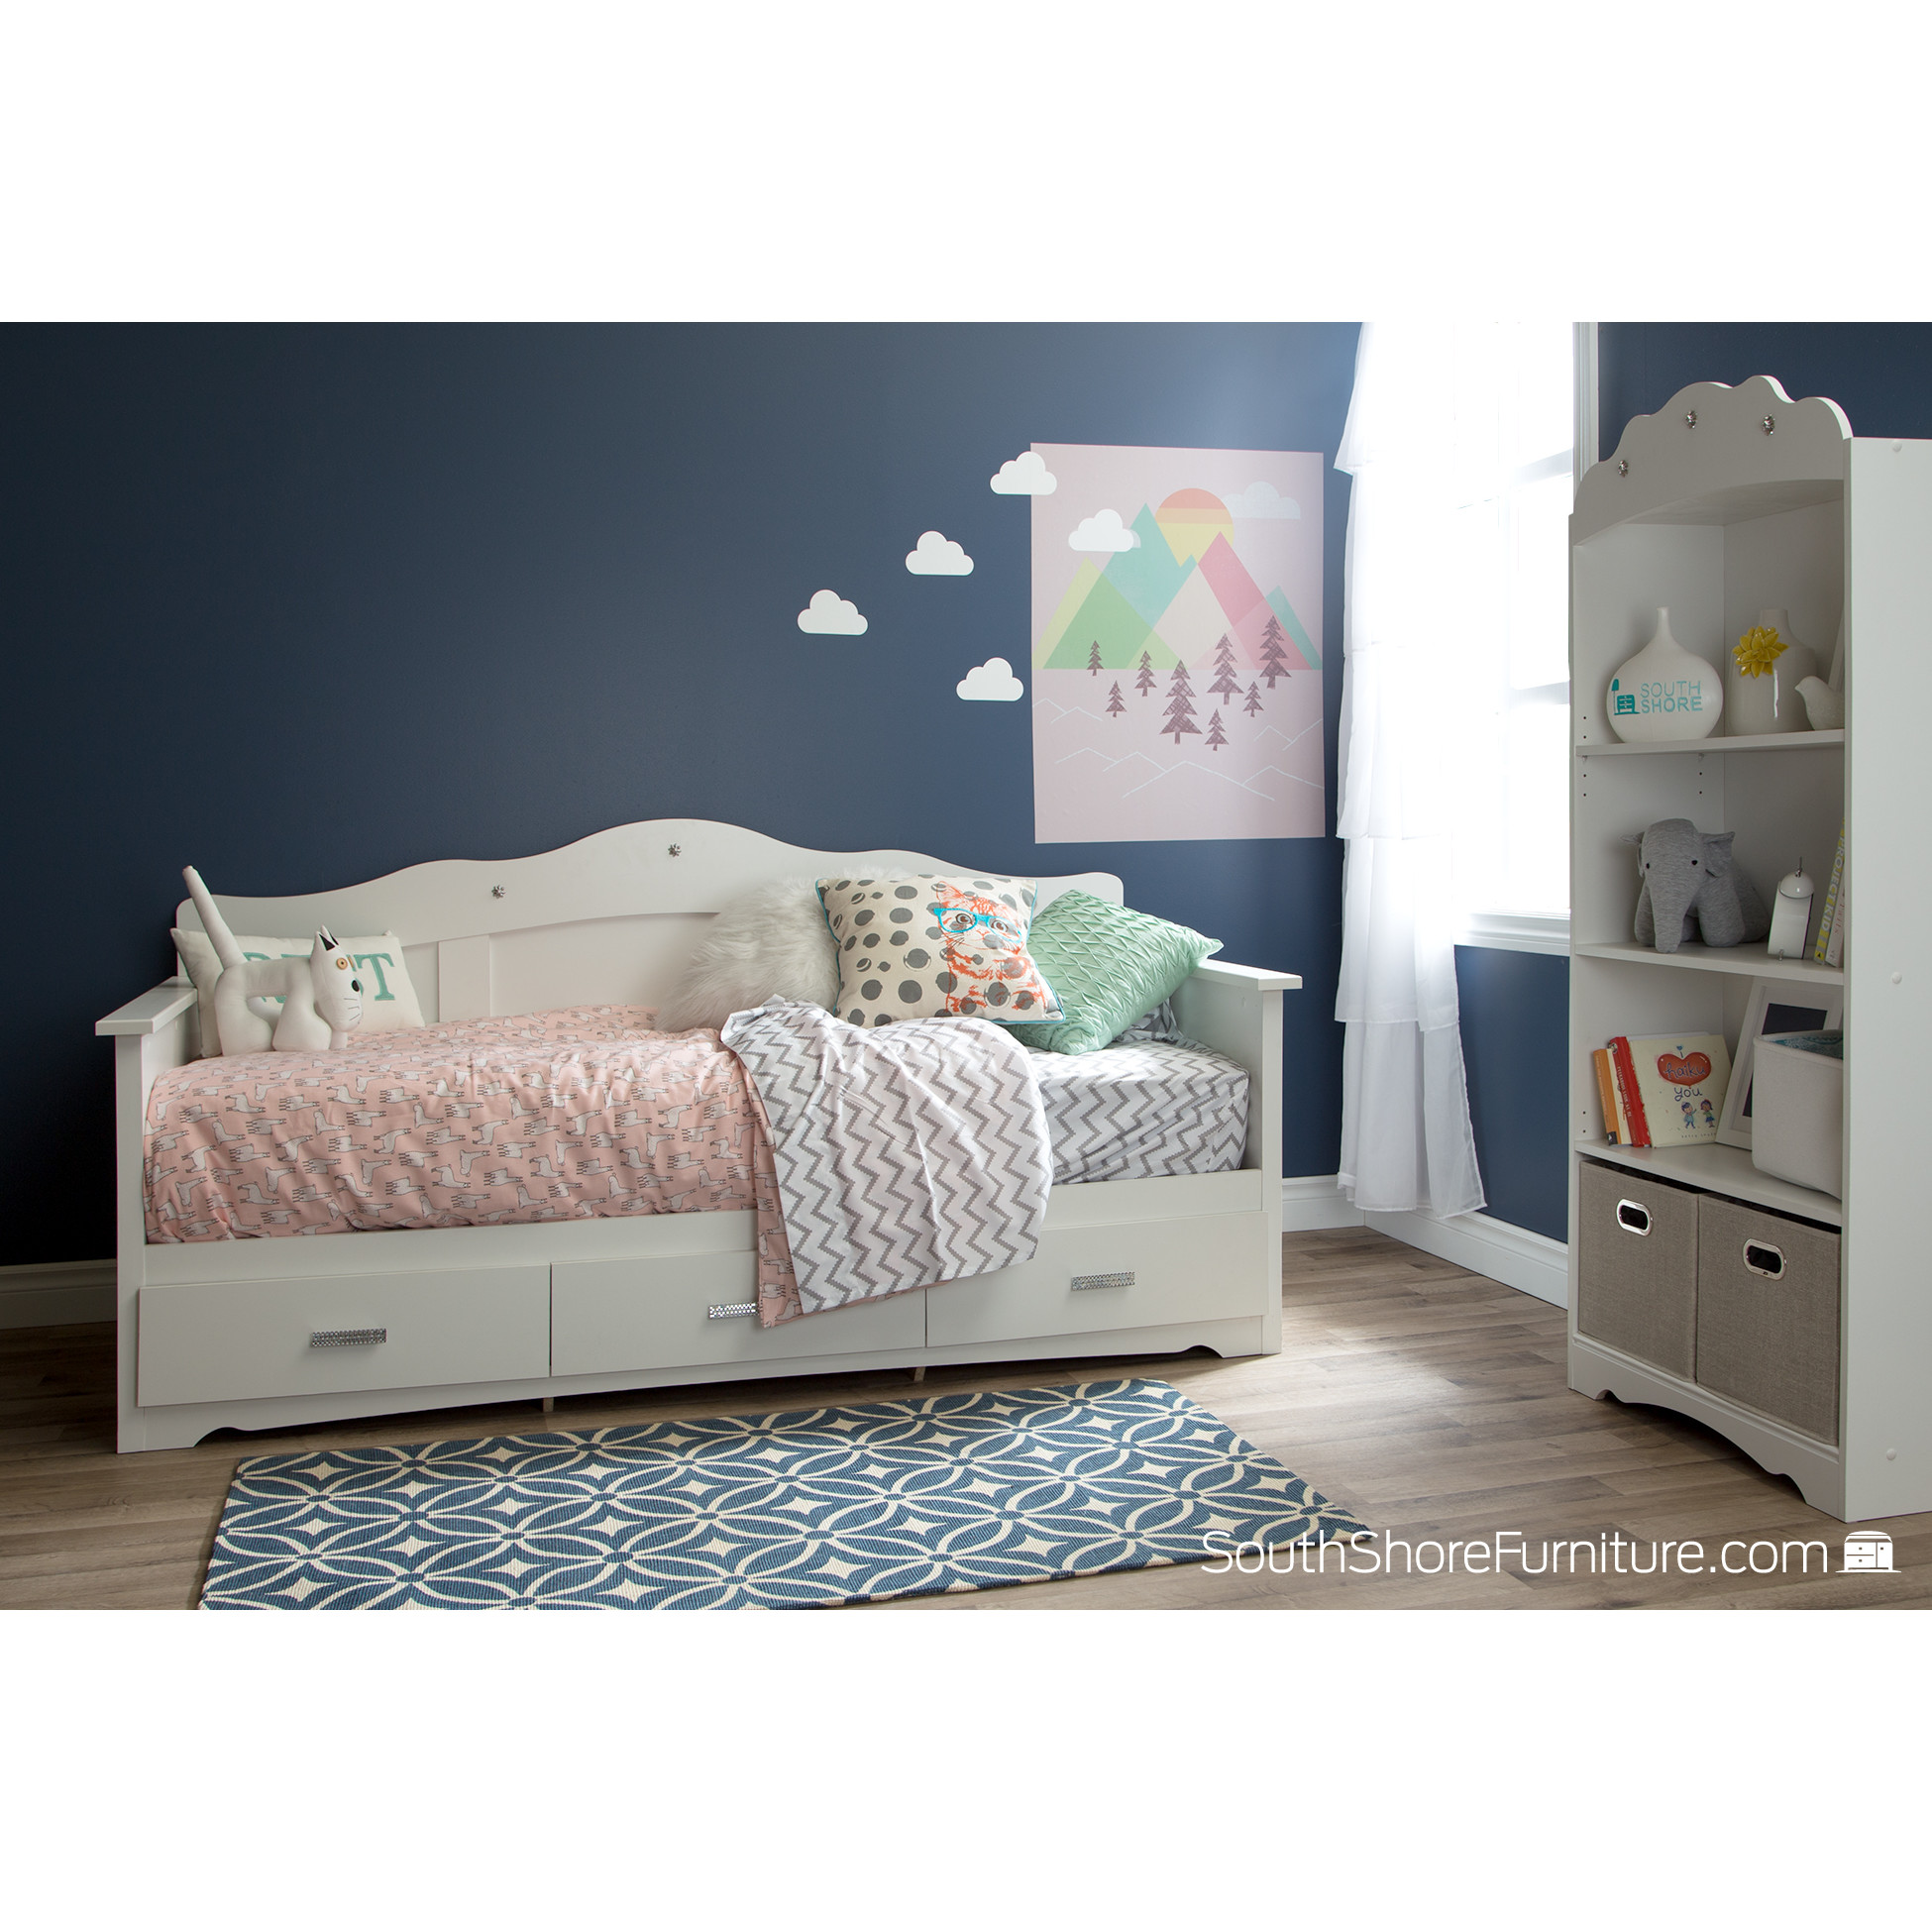 Captivating daybed with storage for small bedroom design with full size daybed with storage